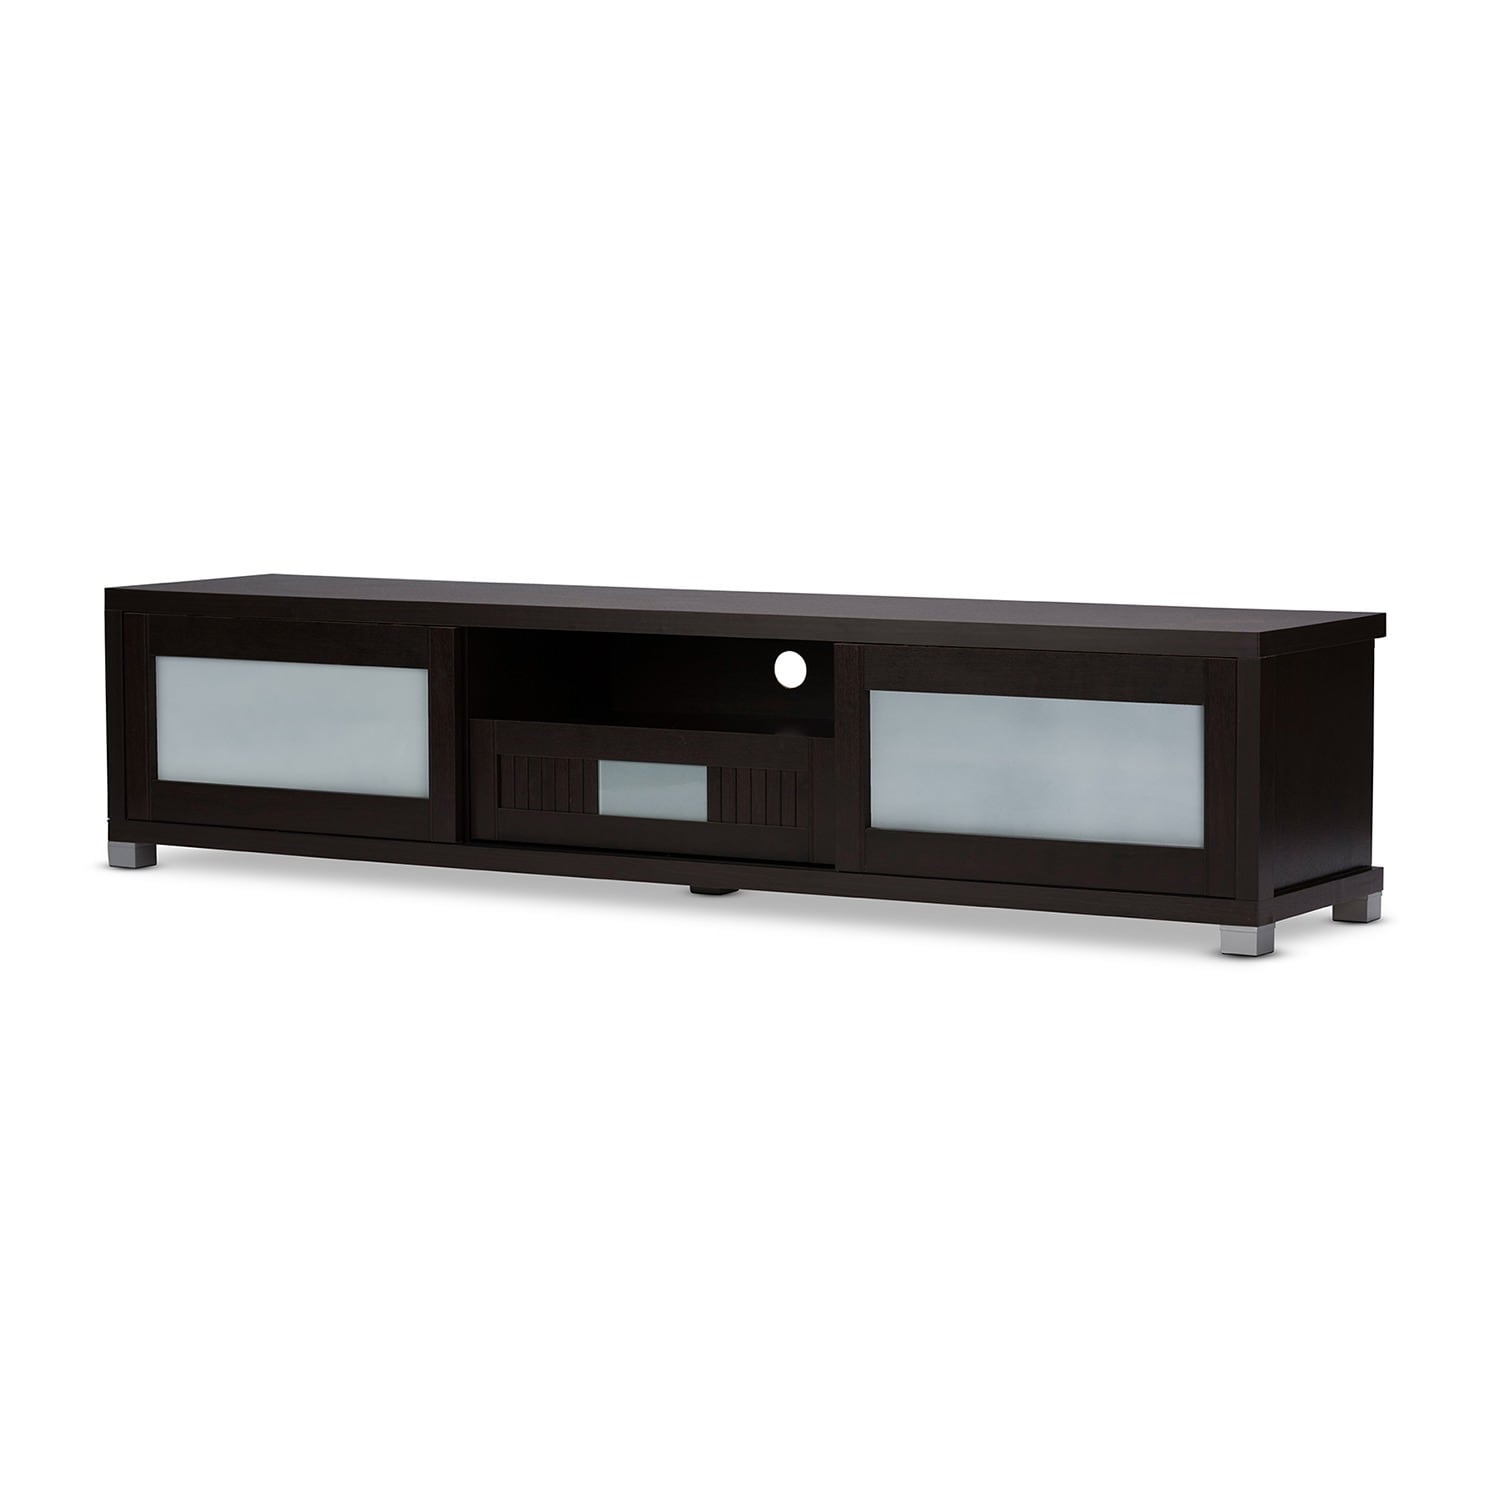 Charmant Shop Baxton Studio Temple Contemporary Dark Brown Wood 70 Inch TV Cabinet  With 2 Sliding Doors And 1 Drawer   Free Shipping Today   Overstock.com    10302501